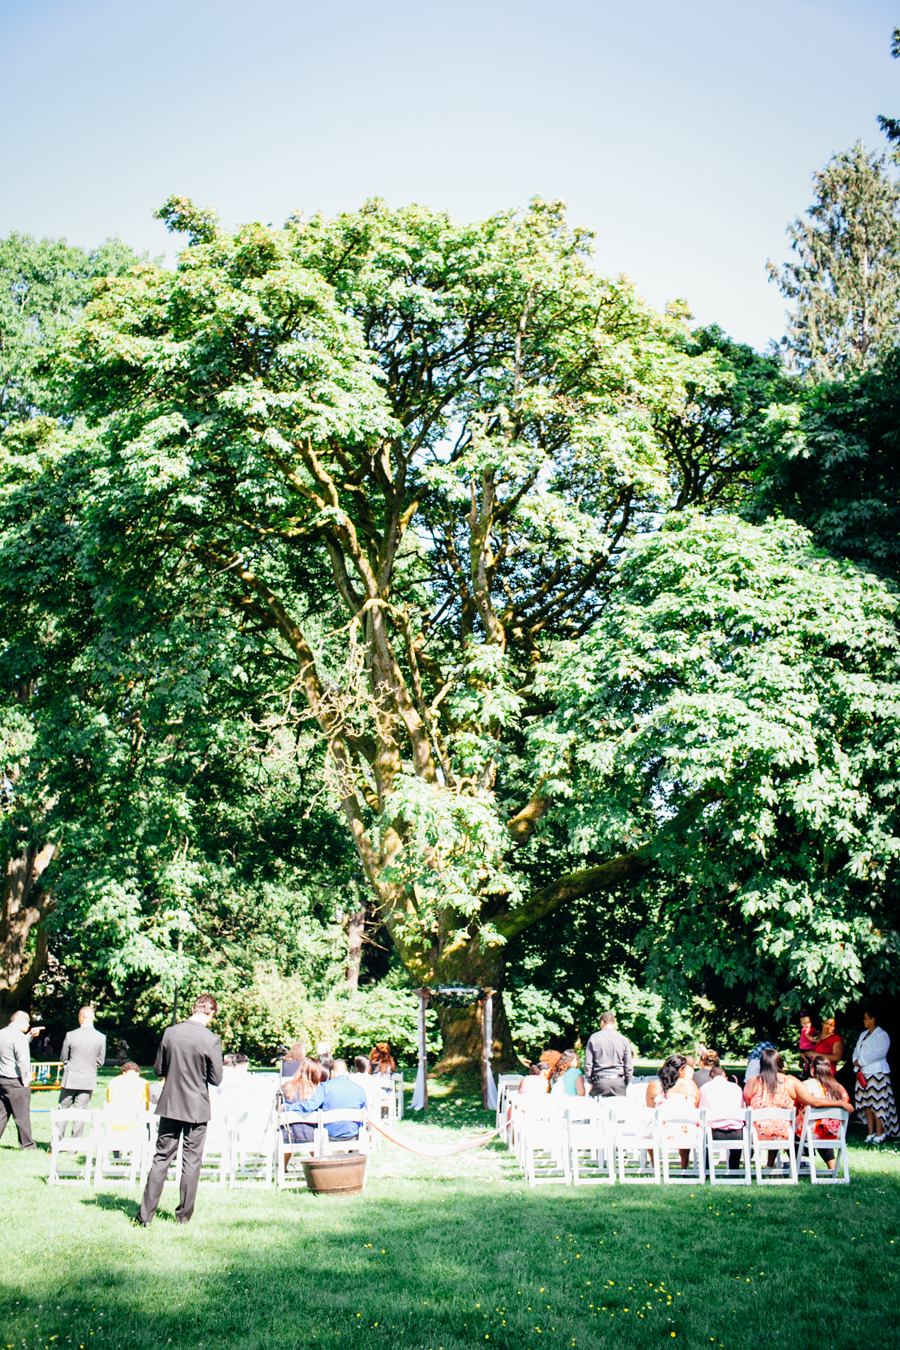 038-volunteer-park-seattle-wedding-katheryn-moran-photography.jpg